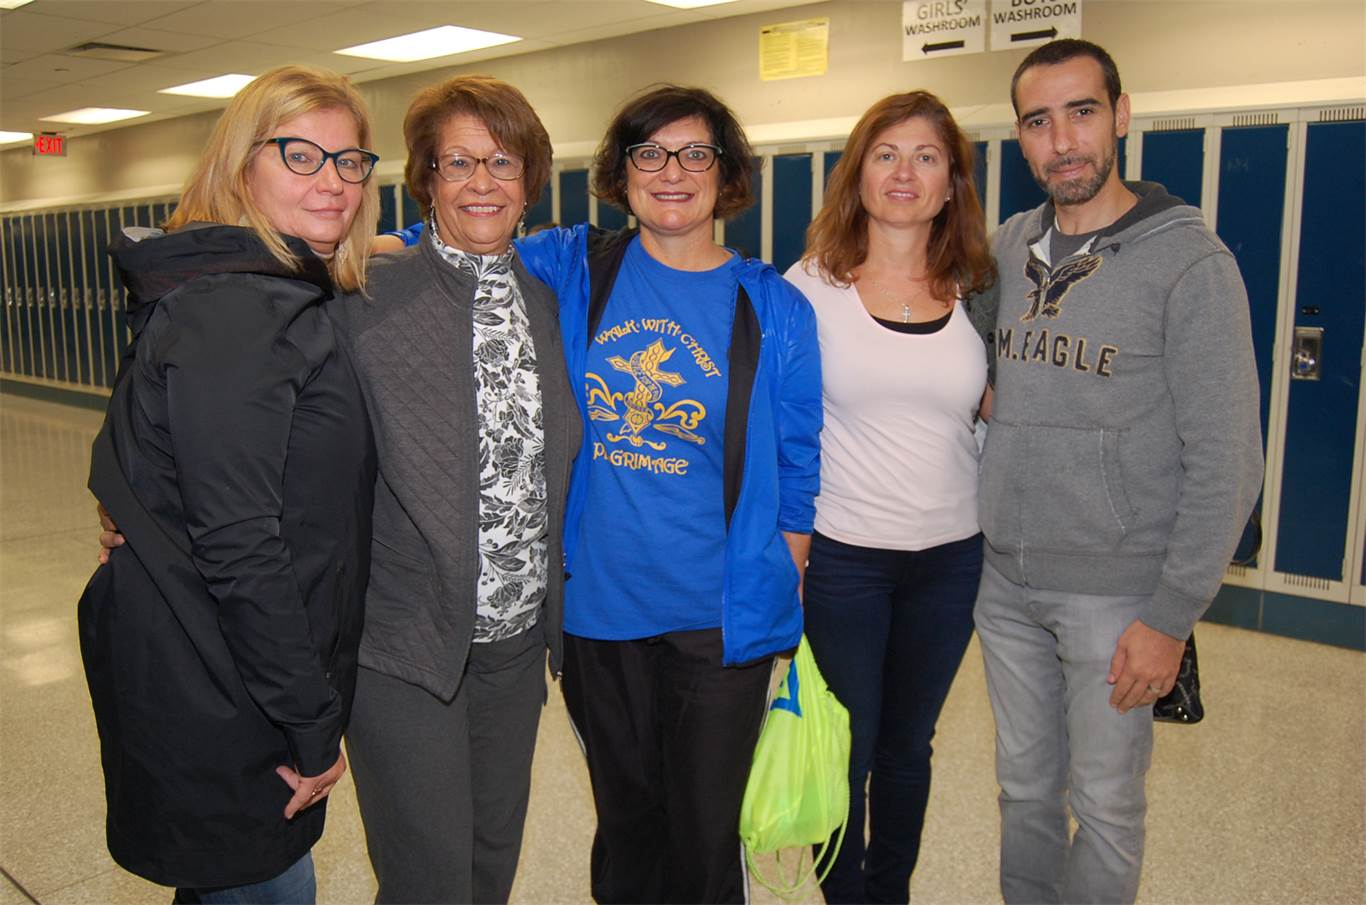 From left to right: Ivana Fortino, Superintendent of Education; retired Superintendent and pilgrimage founder Nancy DiGregorio; Superintendent of Education Sandie Pizzuti; Assistant Superintendent of Education Sandra Scime; and Executive Officer of Human Resources Angelo Romano.